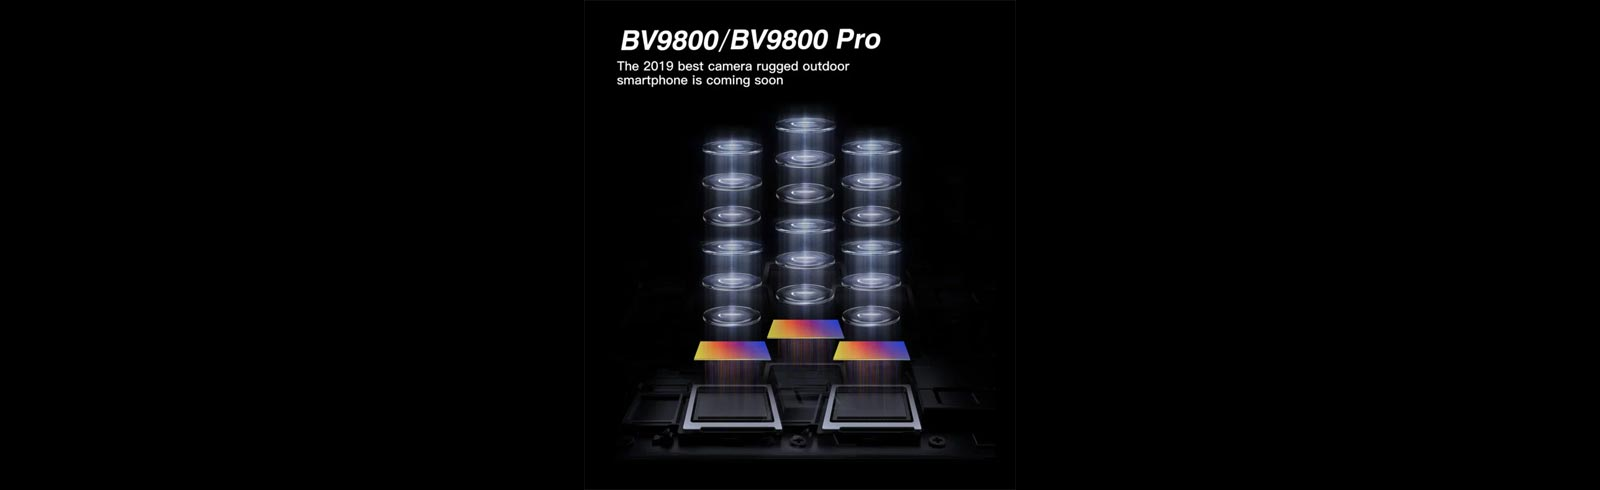 Blackview teases the BV9800 and the BV9800 Pro with 48MP